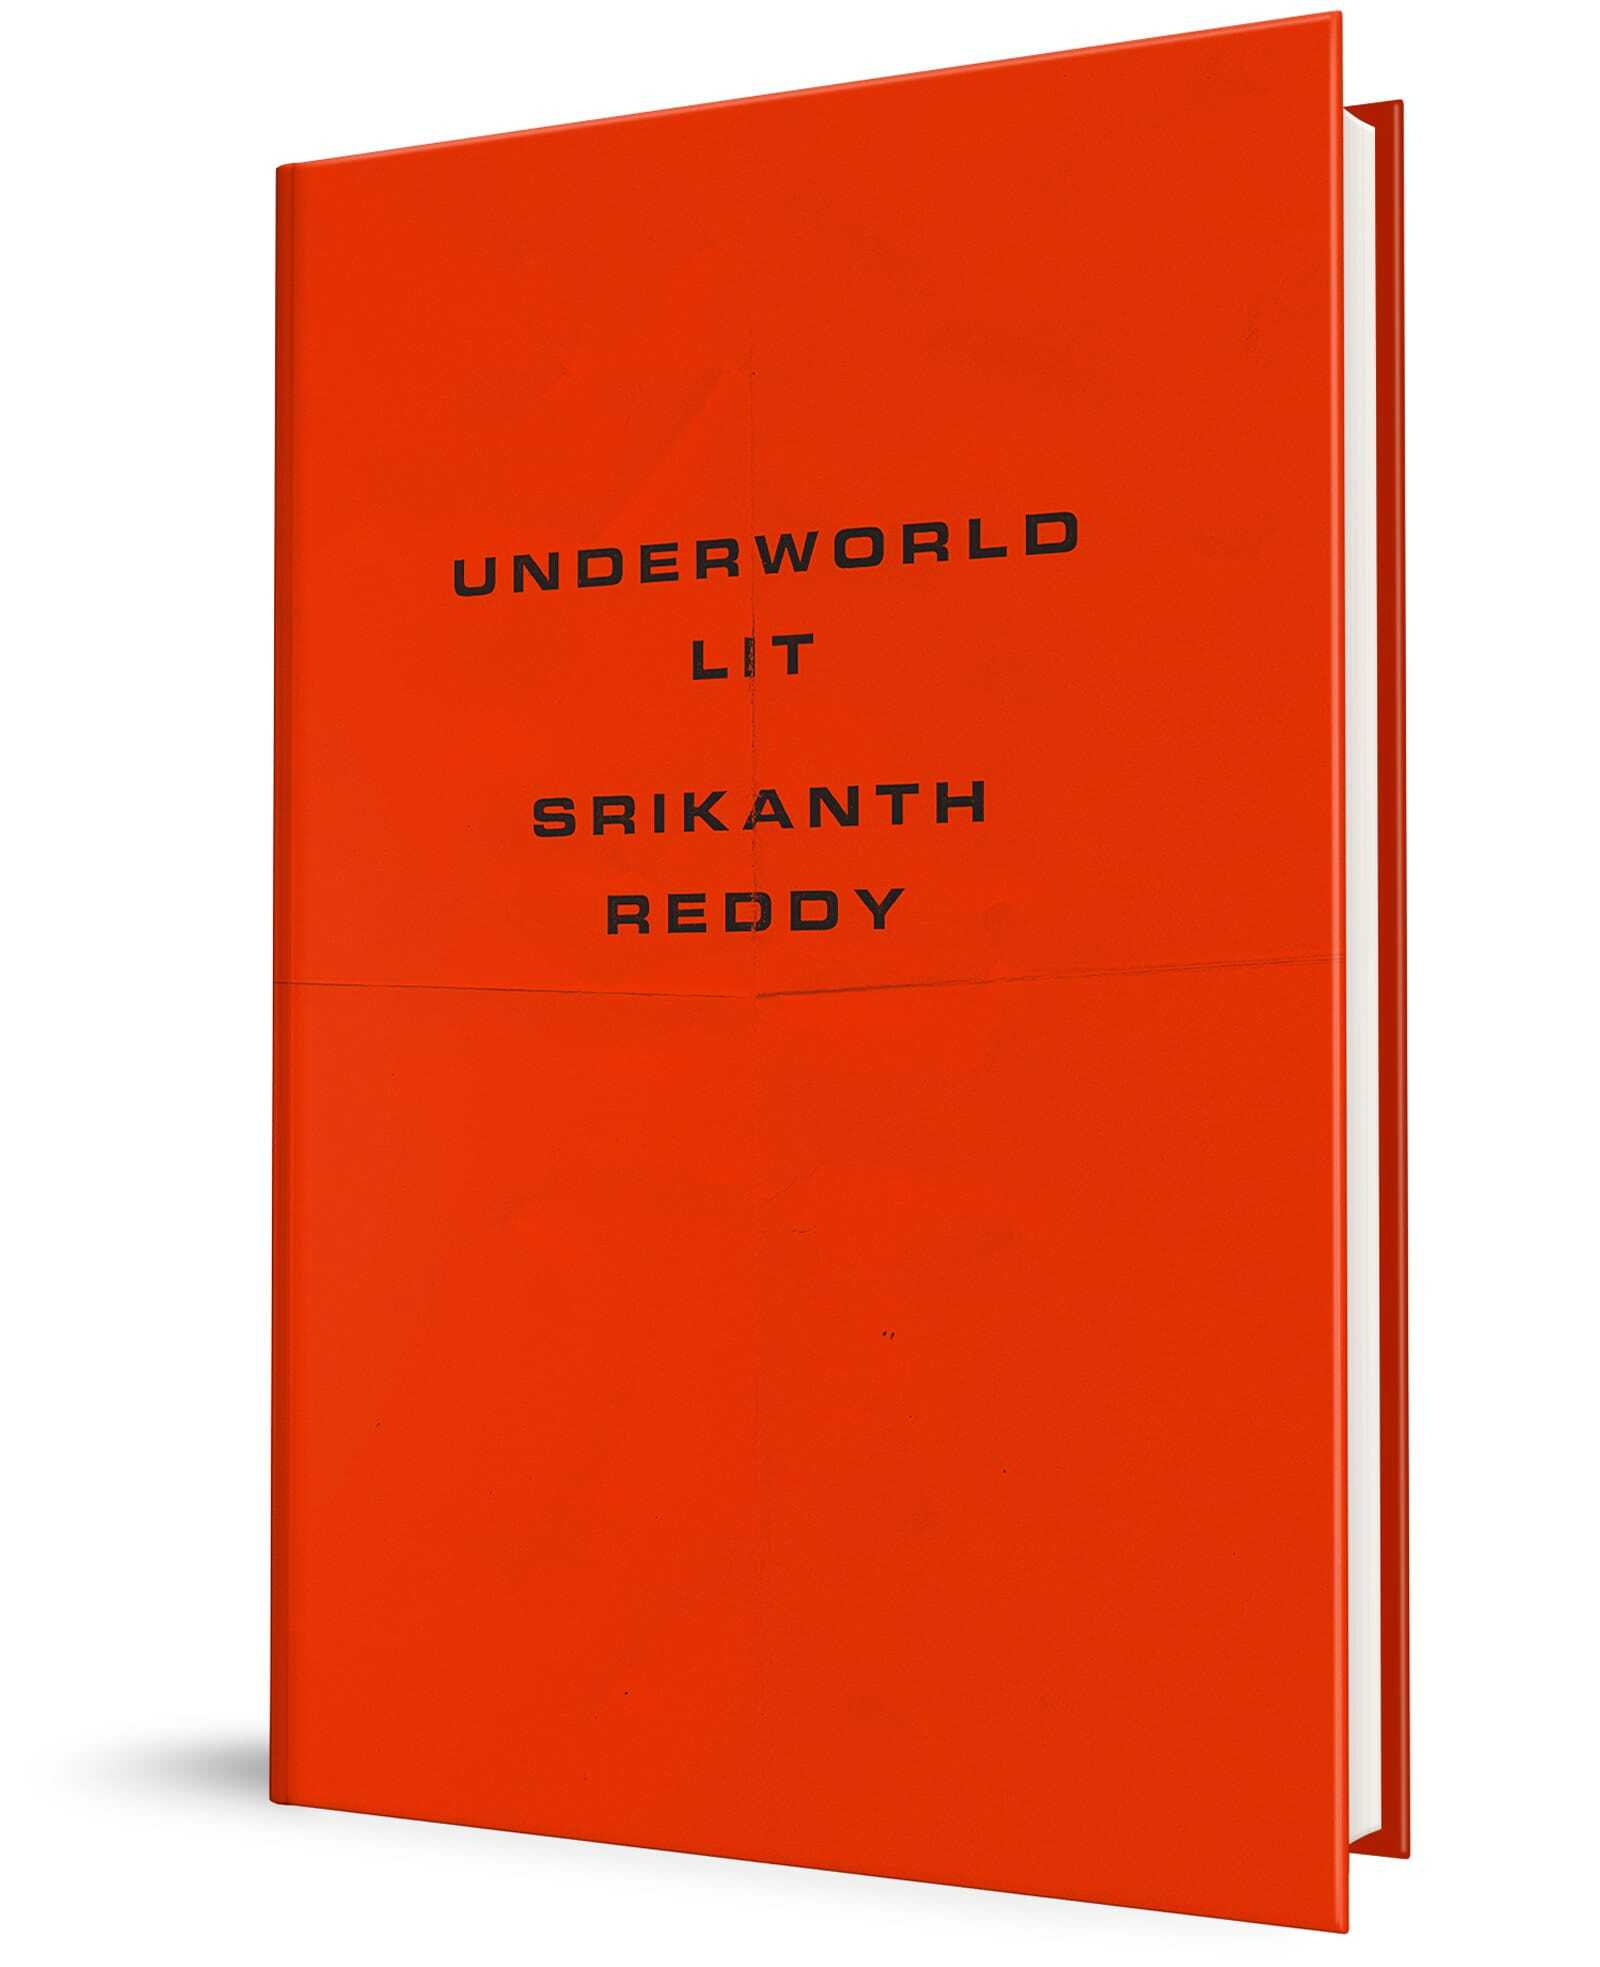 Cover of Underworld Lit by Srikanth Reddy